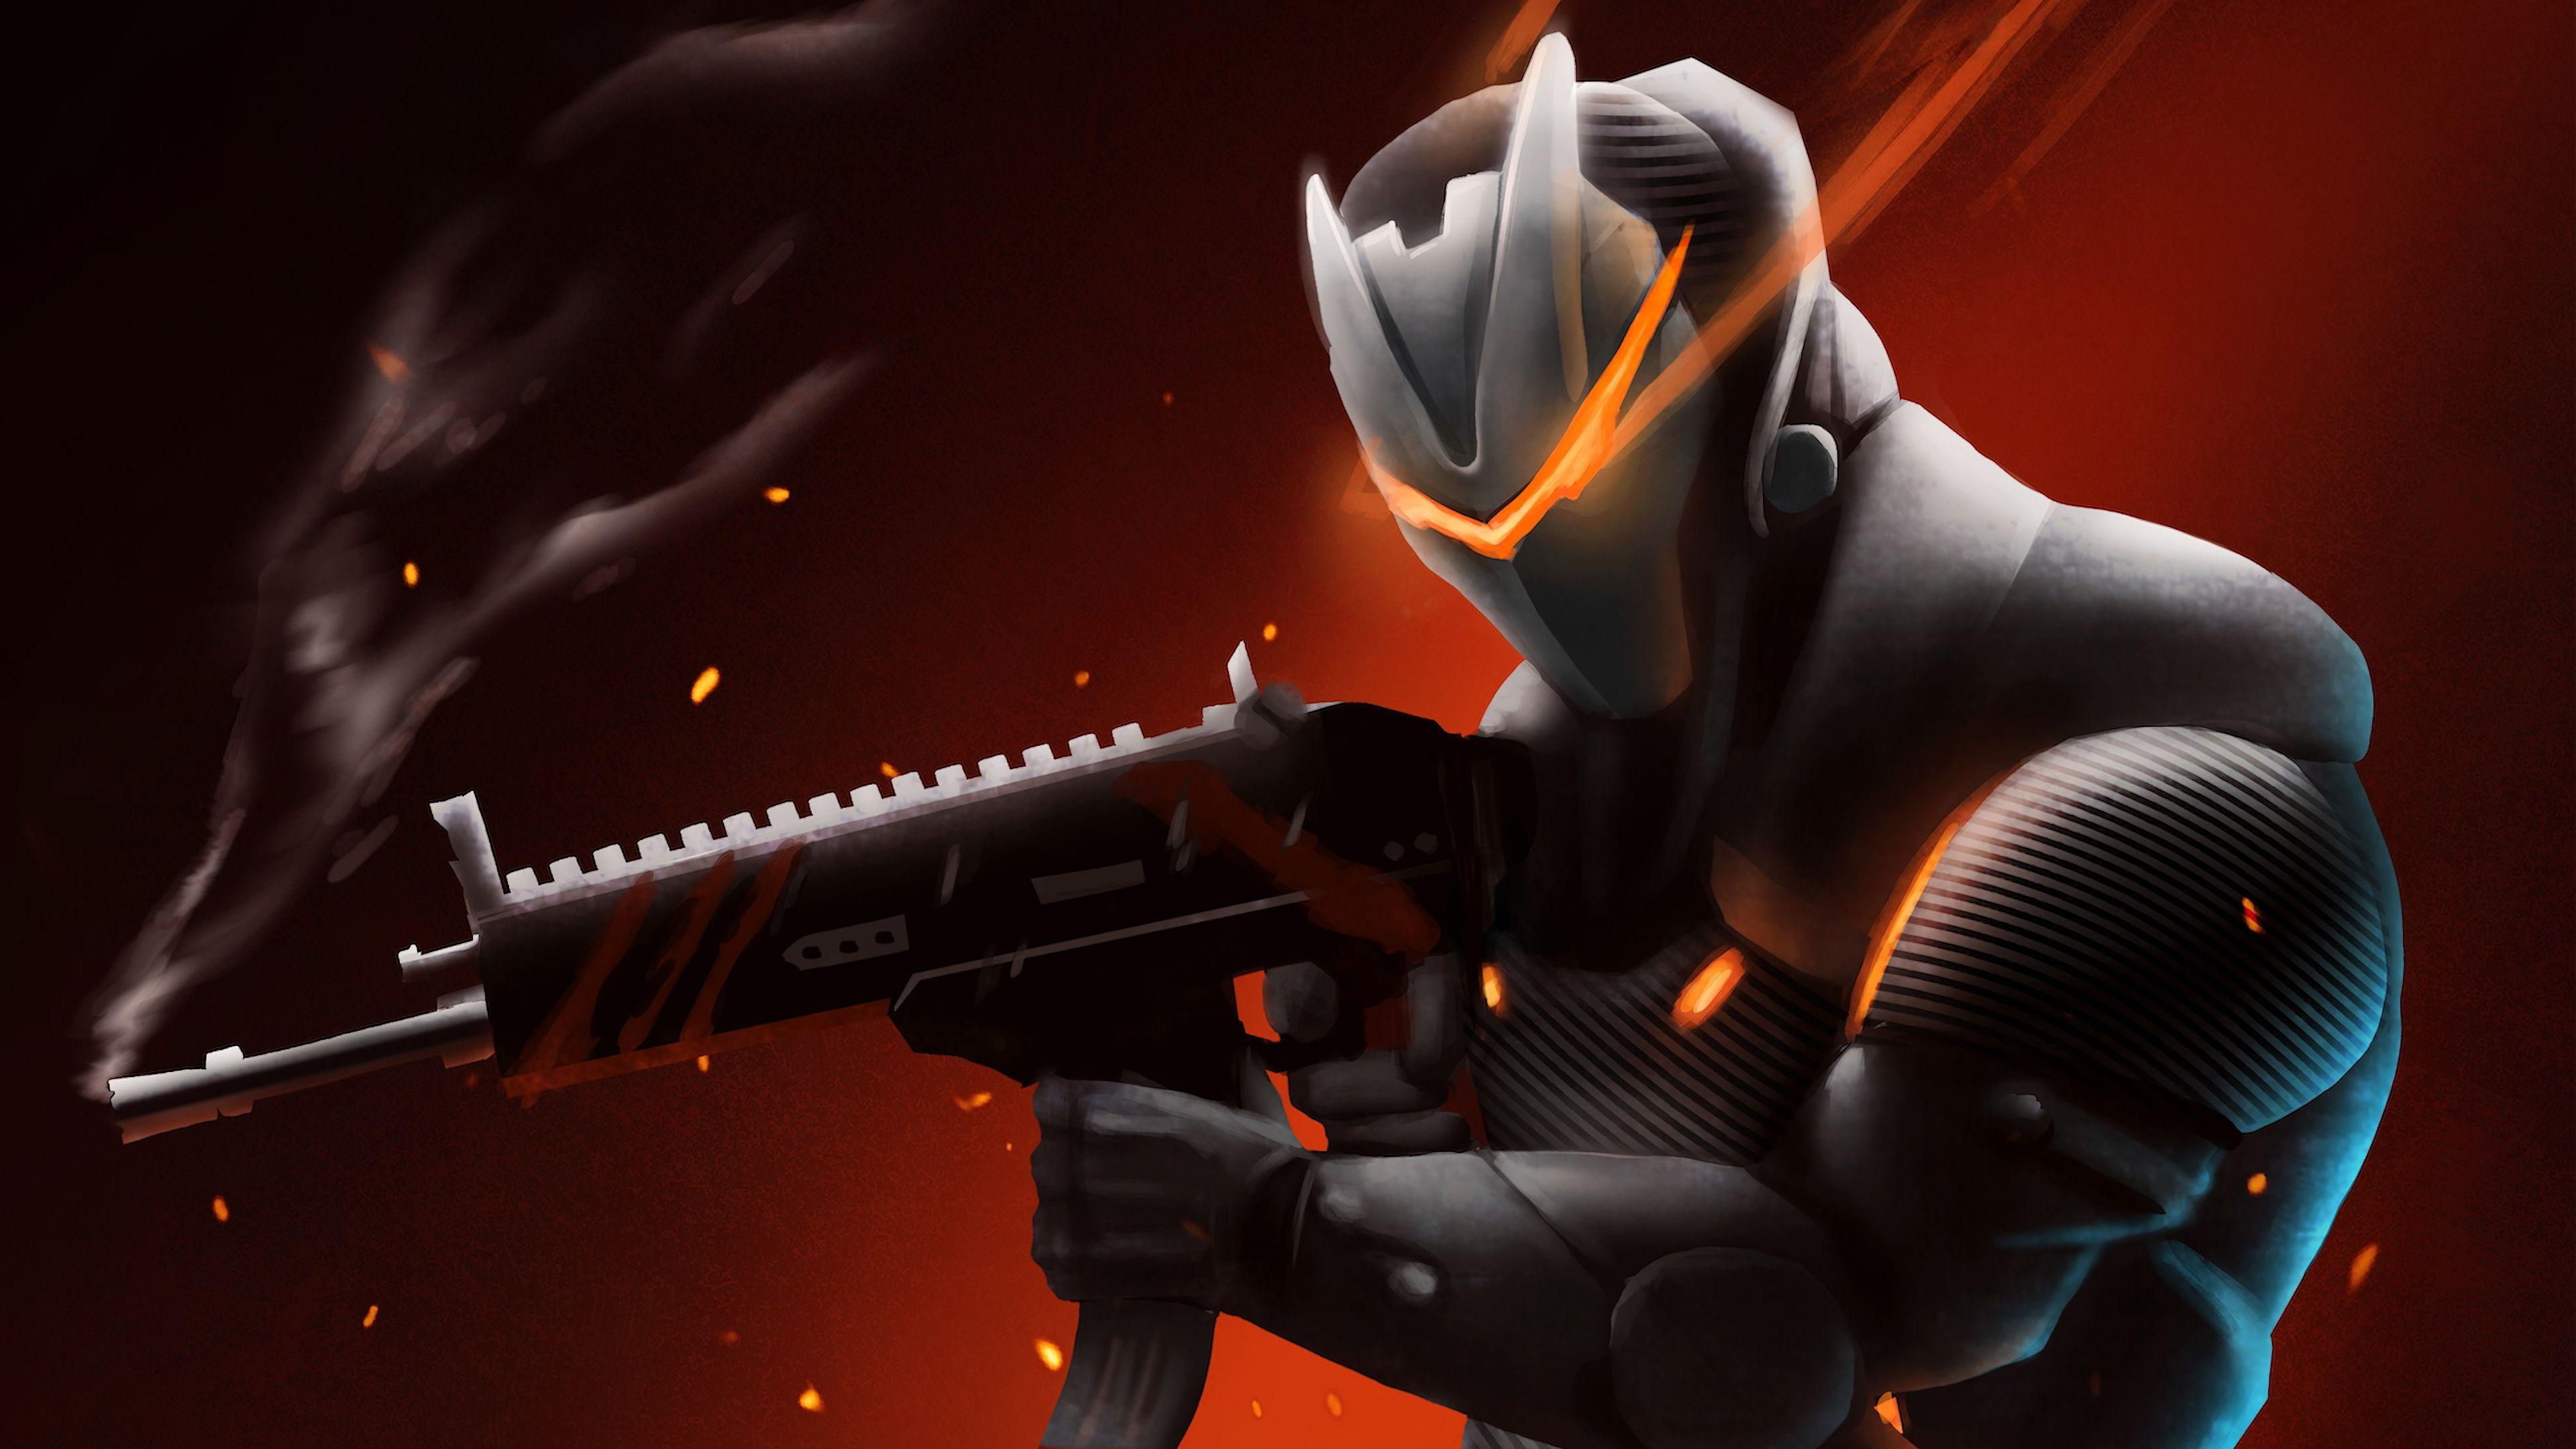 Omega With Rifle Fortnite Battle Royale, HD Games, 4k Wallpapers ...